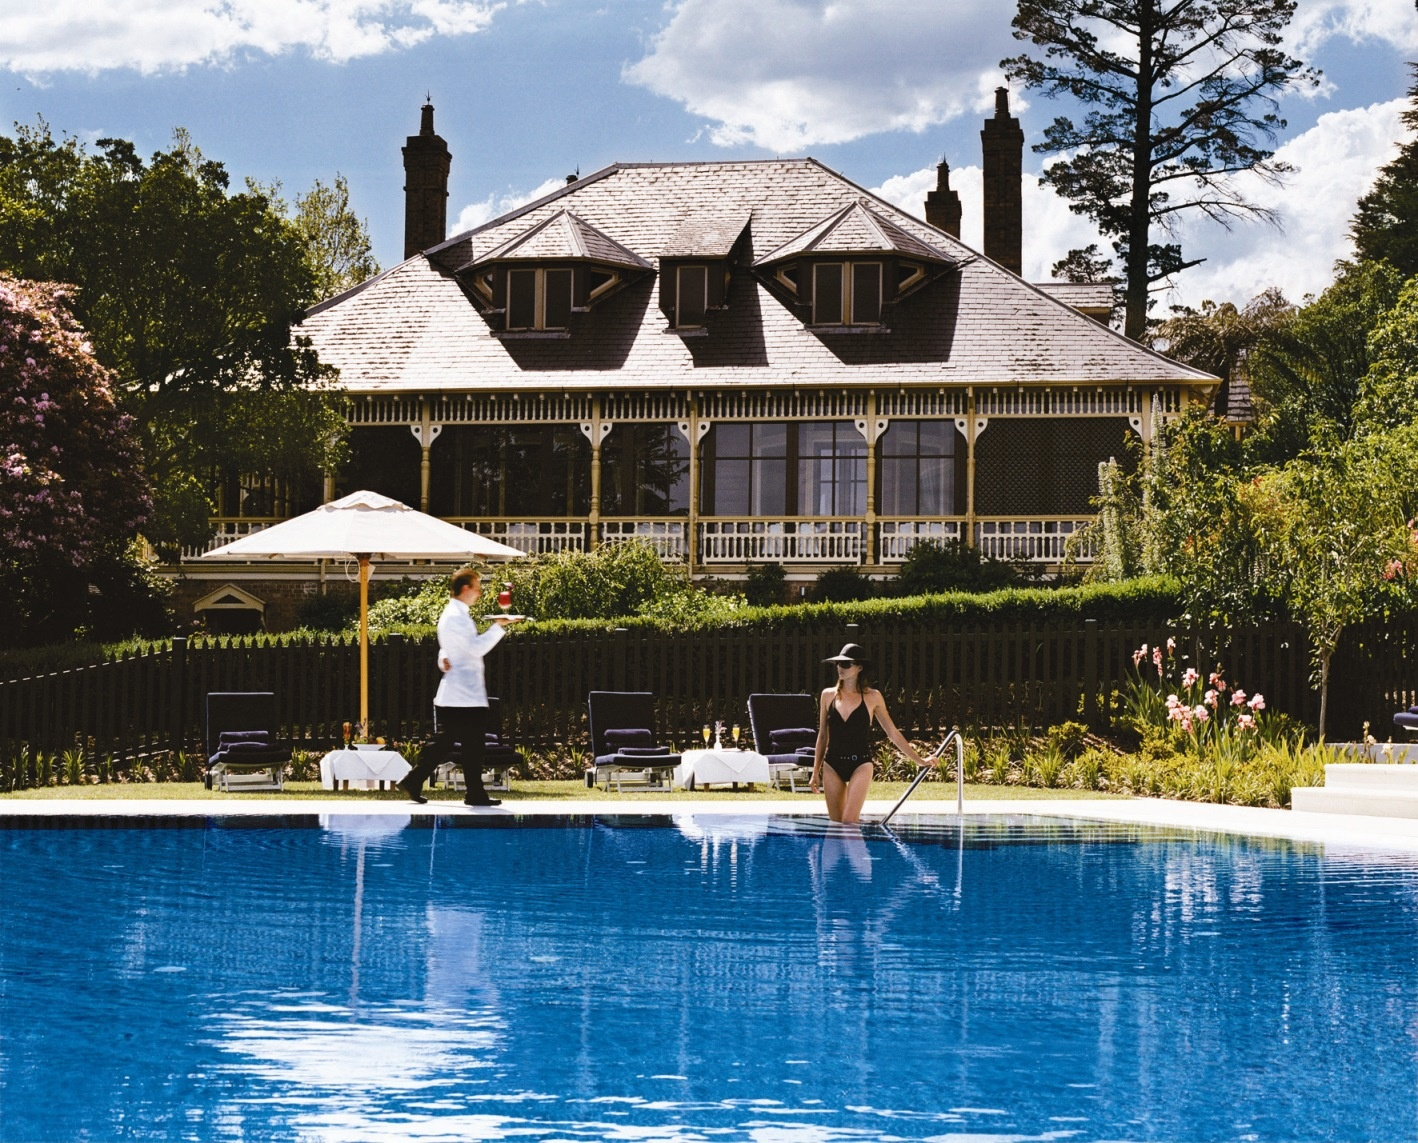 Lilianfels Blue Mountains Resort Amp Spa